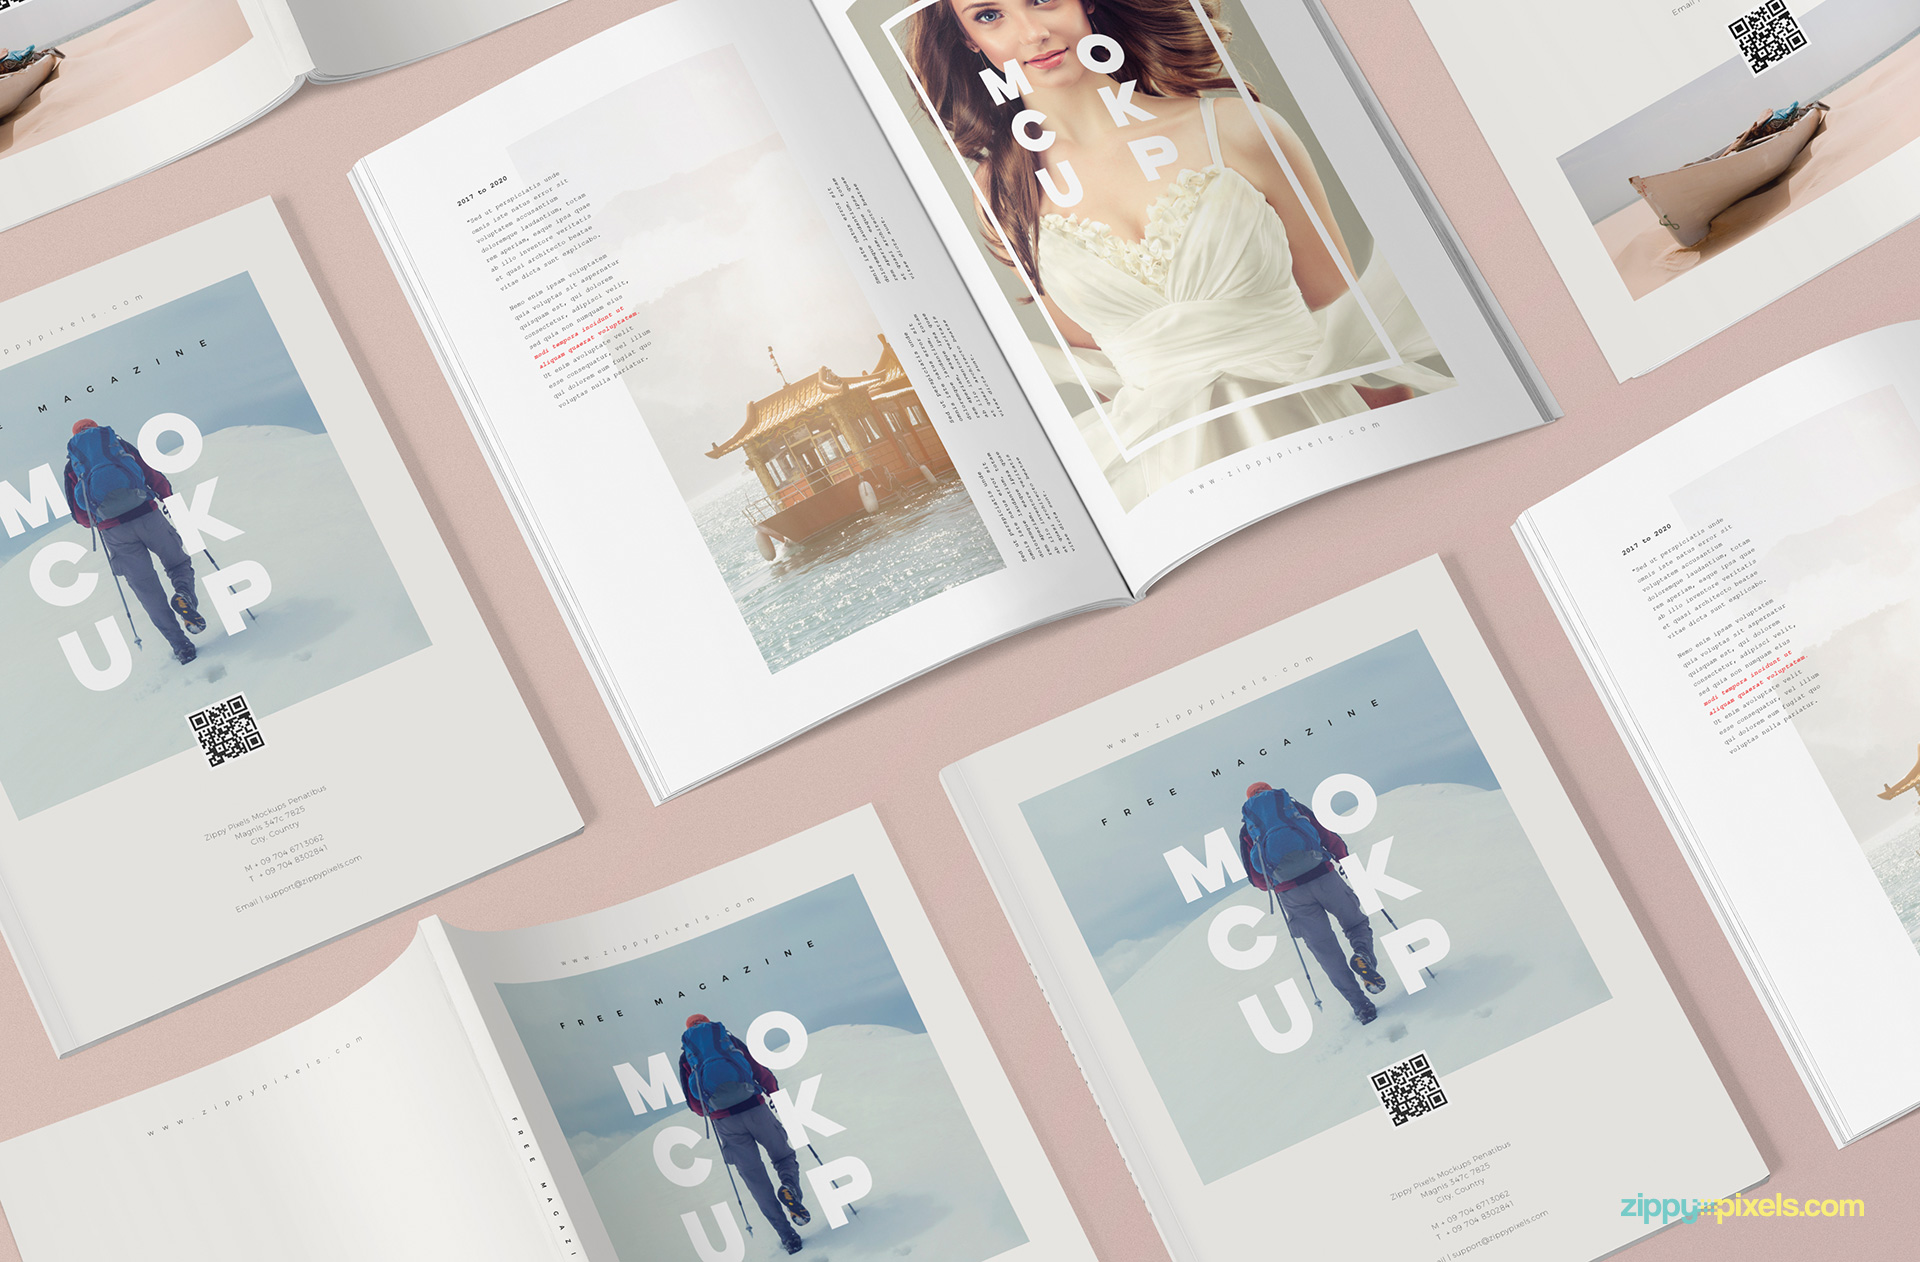 Use the smart layers to place your design and every object is movable and toggled on/off. 3 Free Magazine Mockup Templates Zippypixels